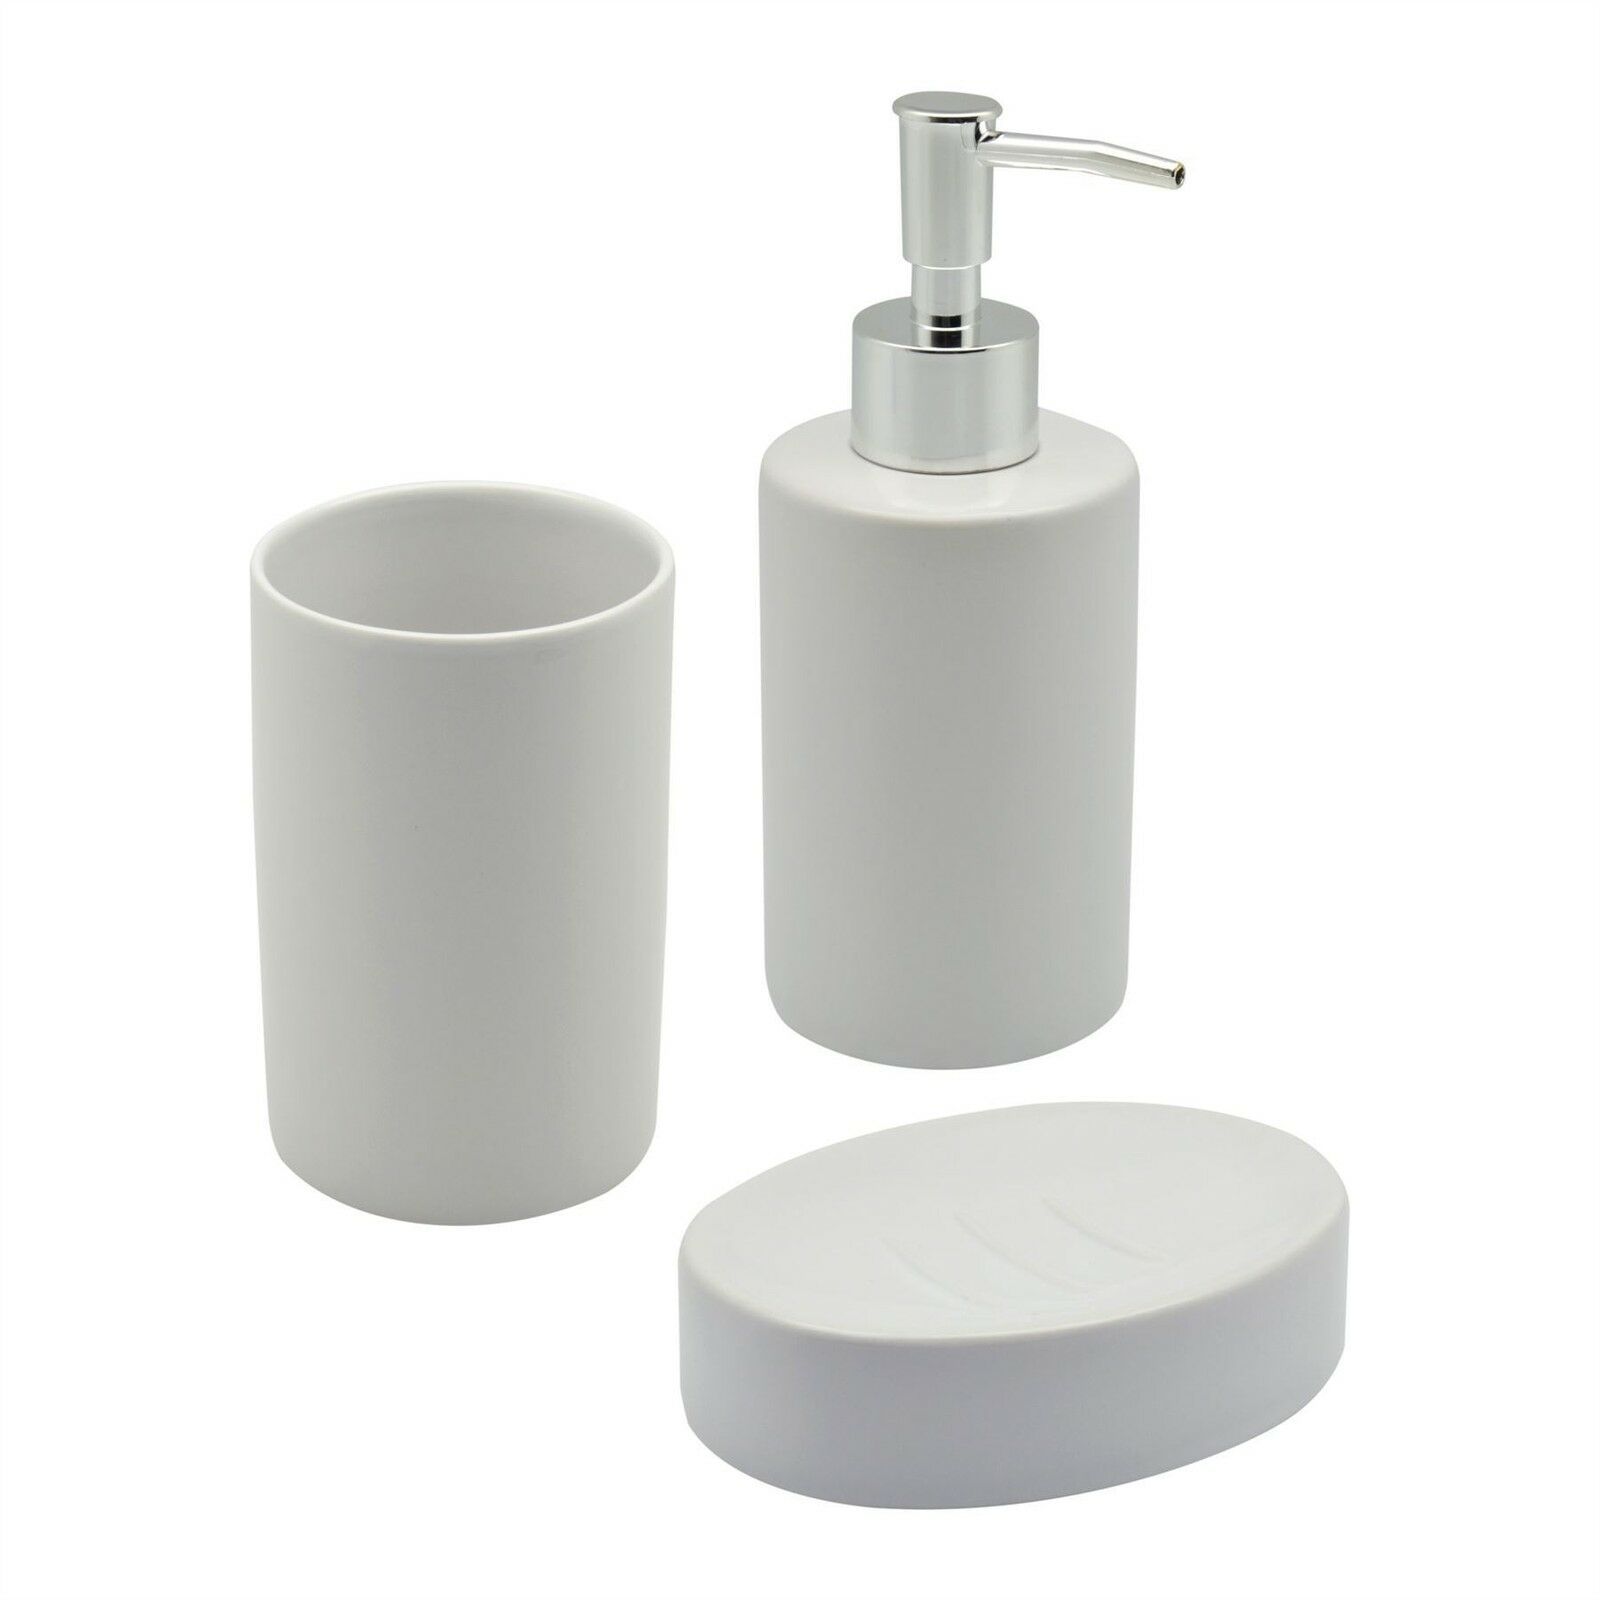 White ceramic bathroom set including soap dispenser dish for White bathroom tumbler